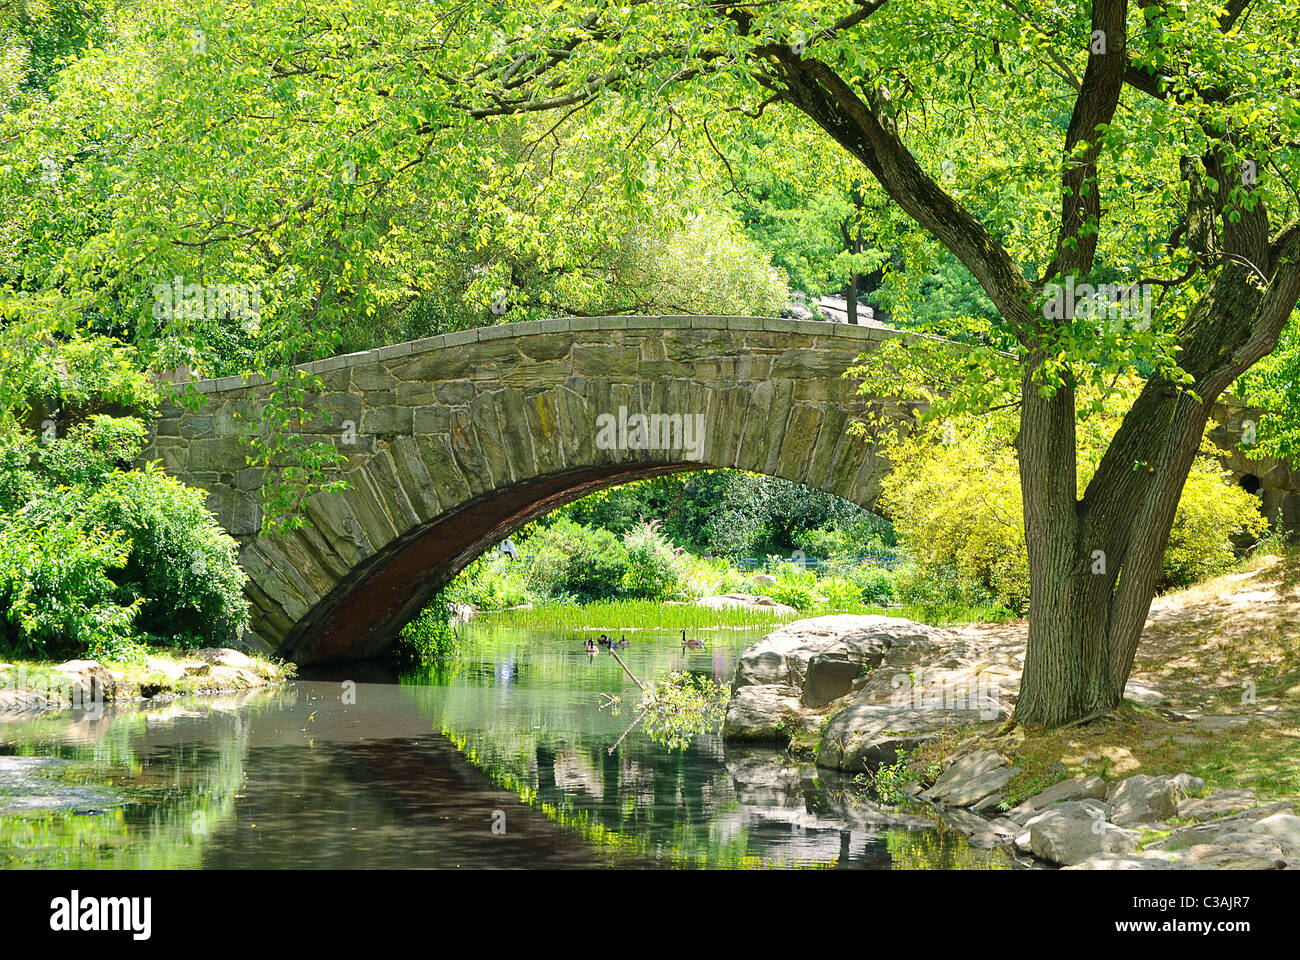 Gapstow Bridge over The Pond in Central Park, New York City. Stock Photo